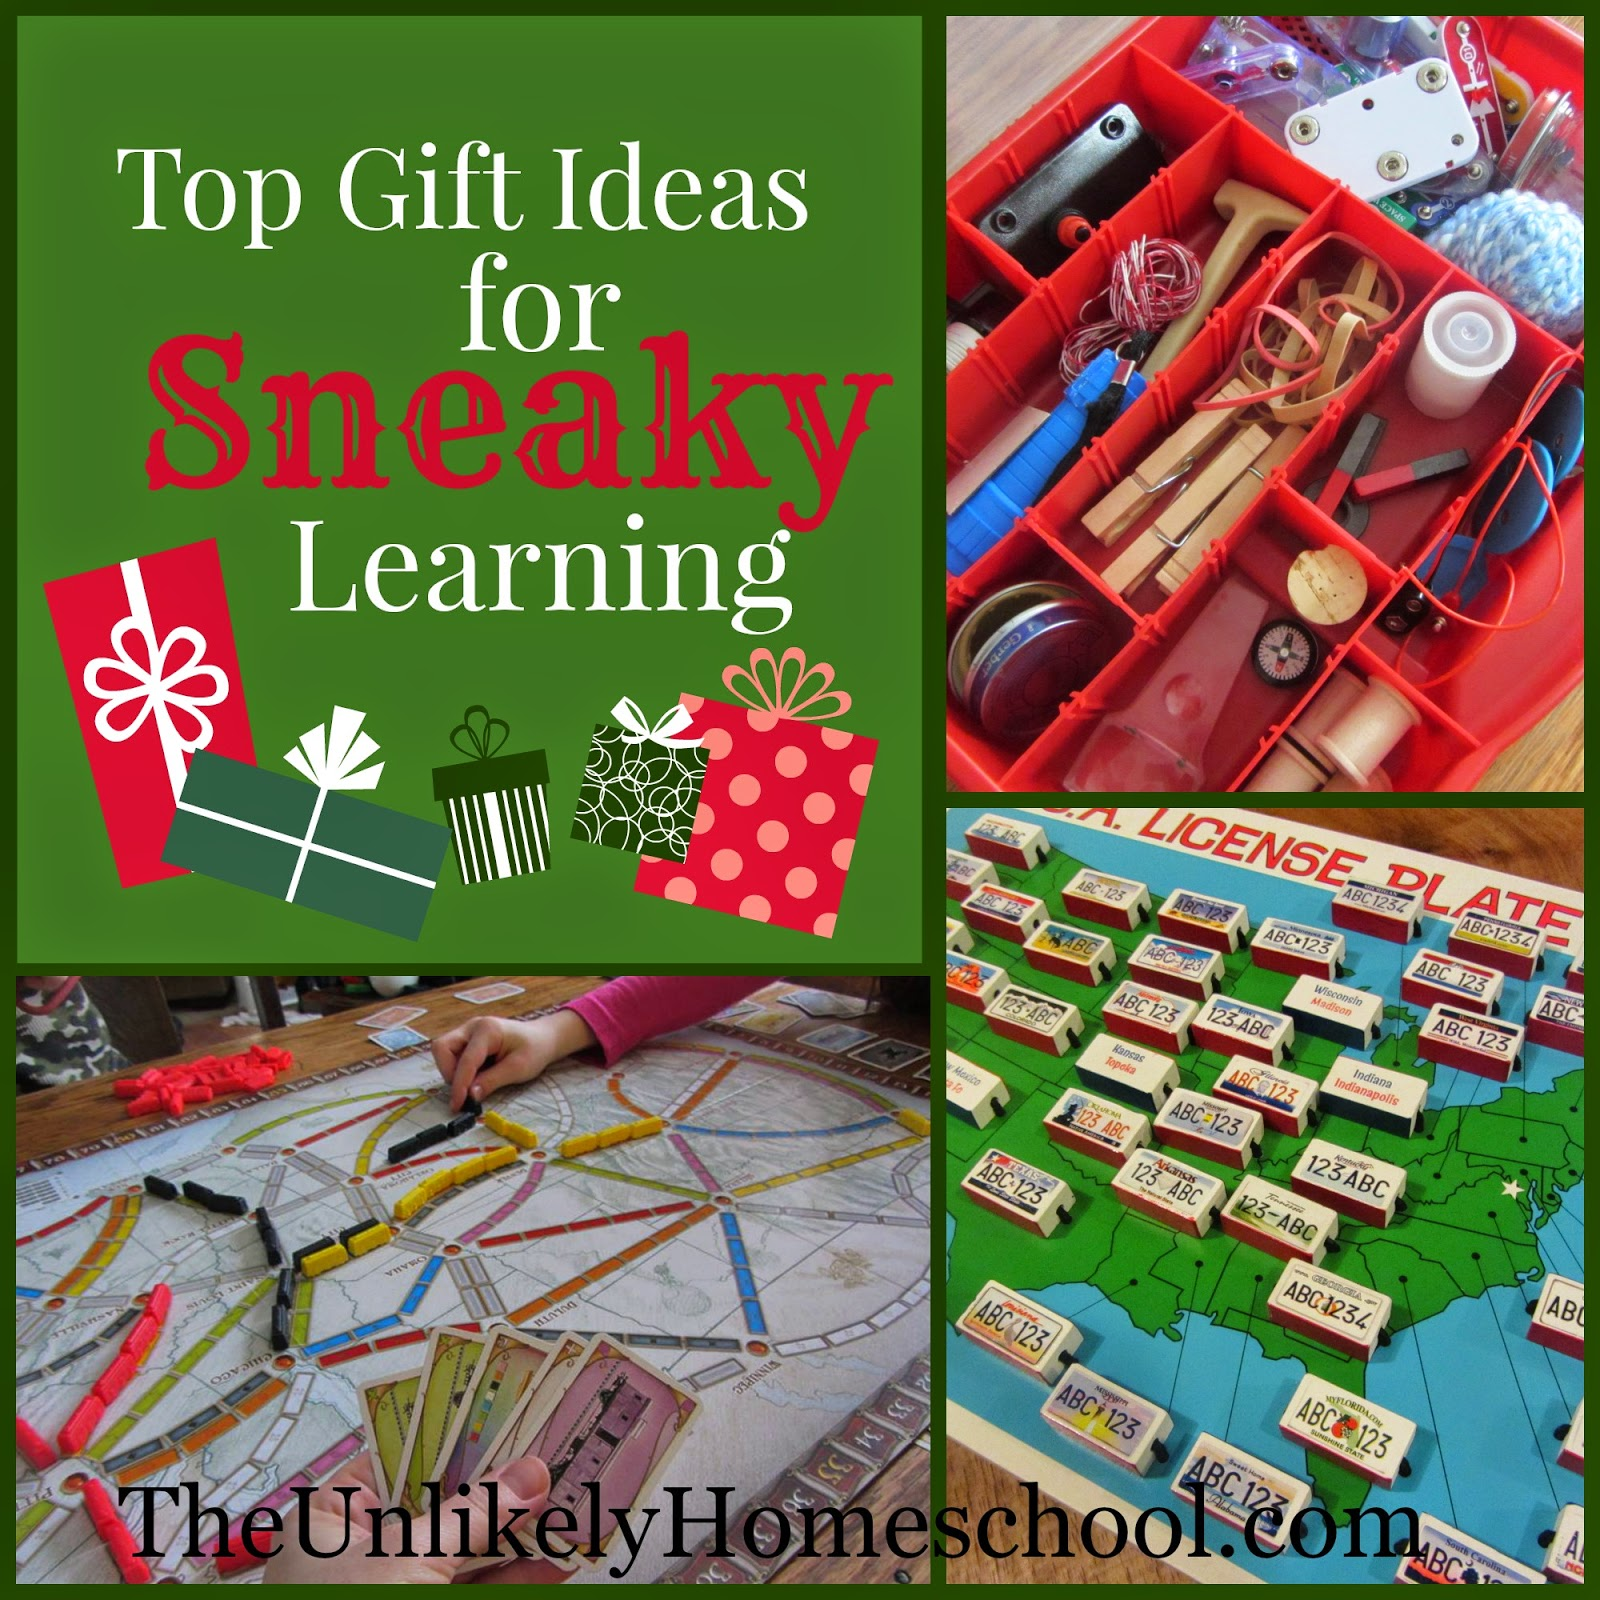 the unlikely homeschool top gift ideas for sneaky learning